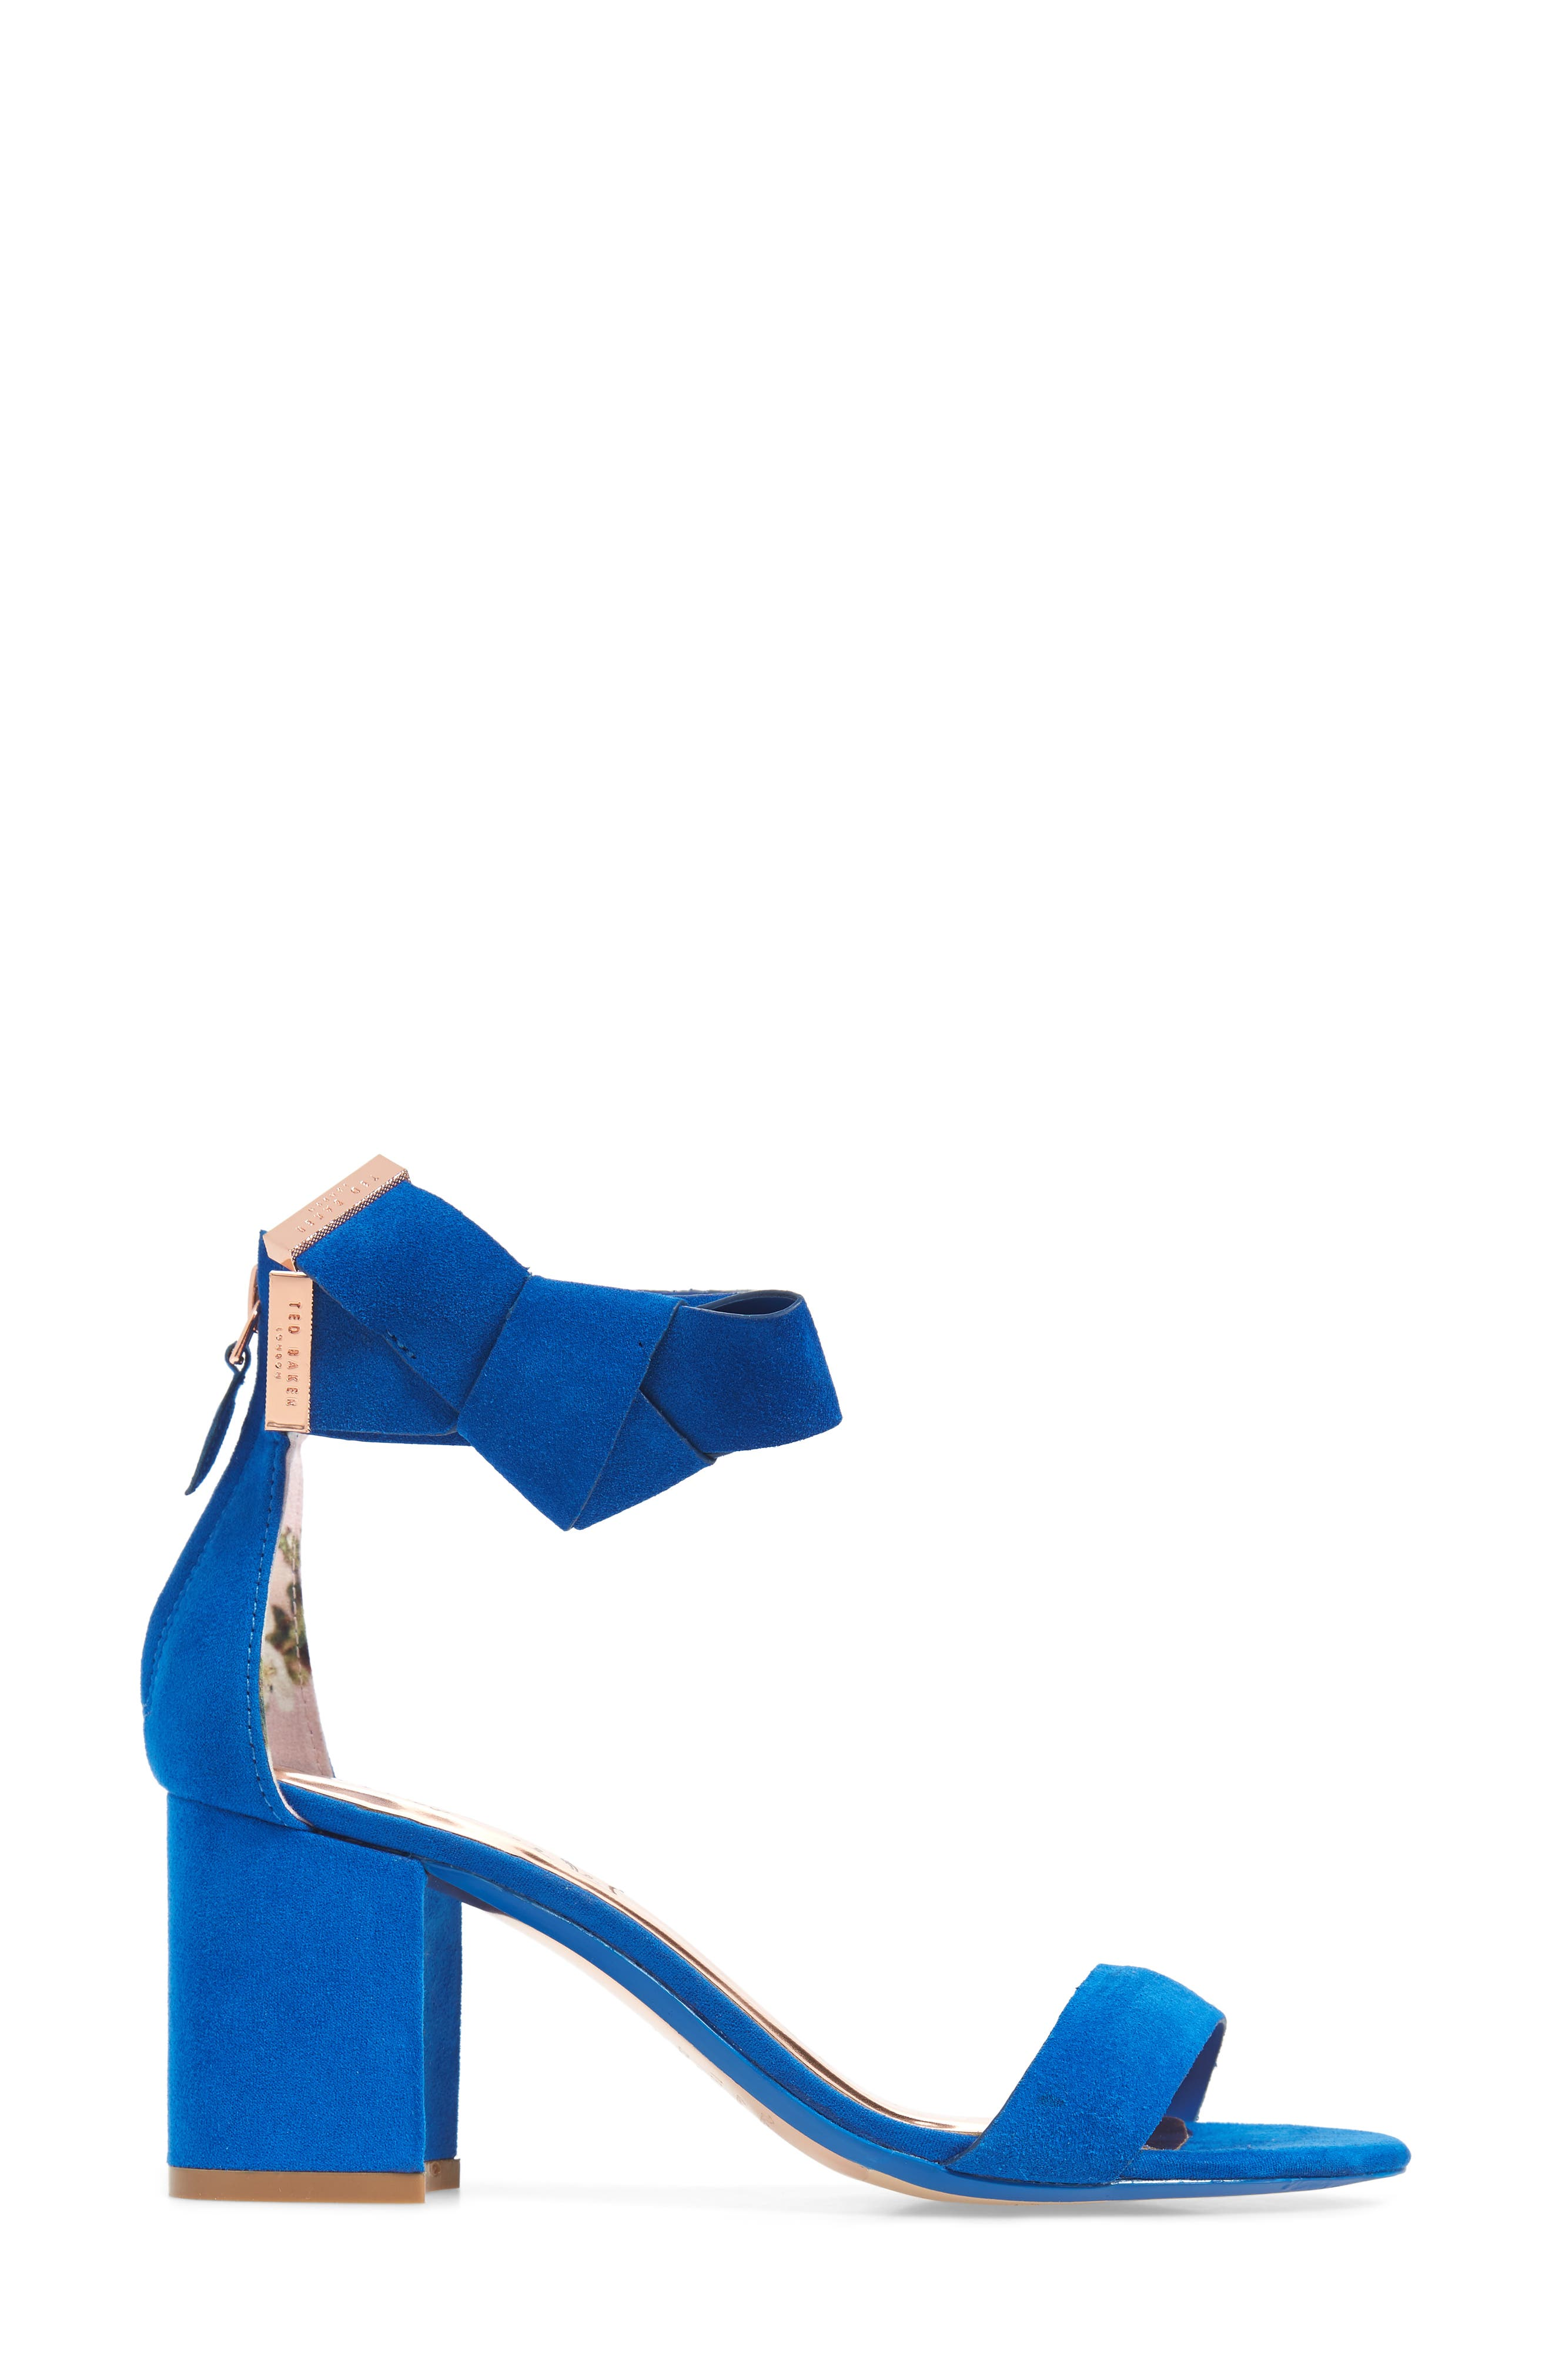 Kerrias Block Heel Sandal,                             Alternate thumbnail 3, color,                             402